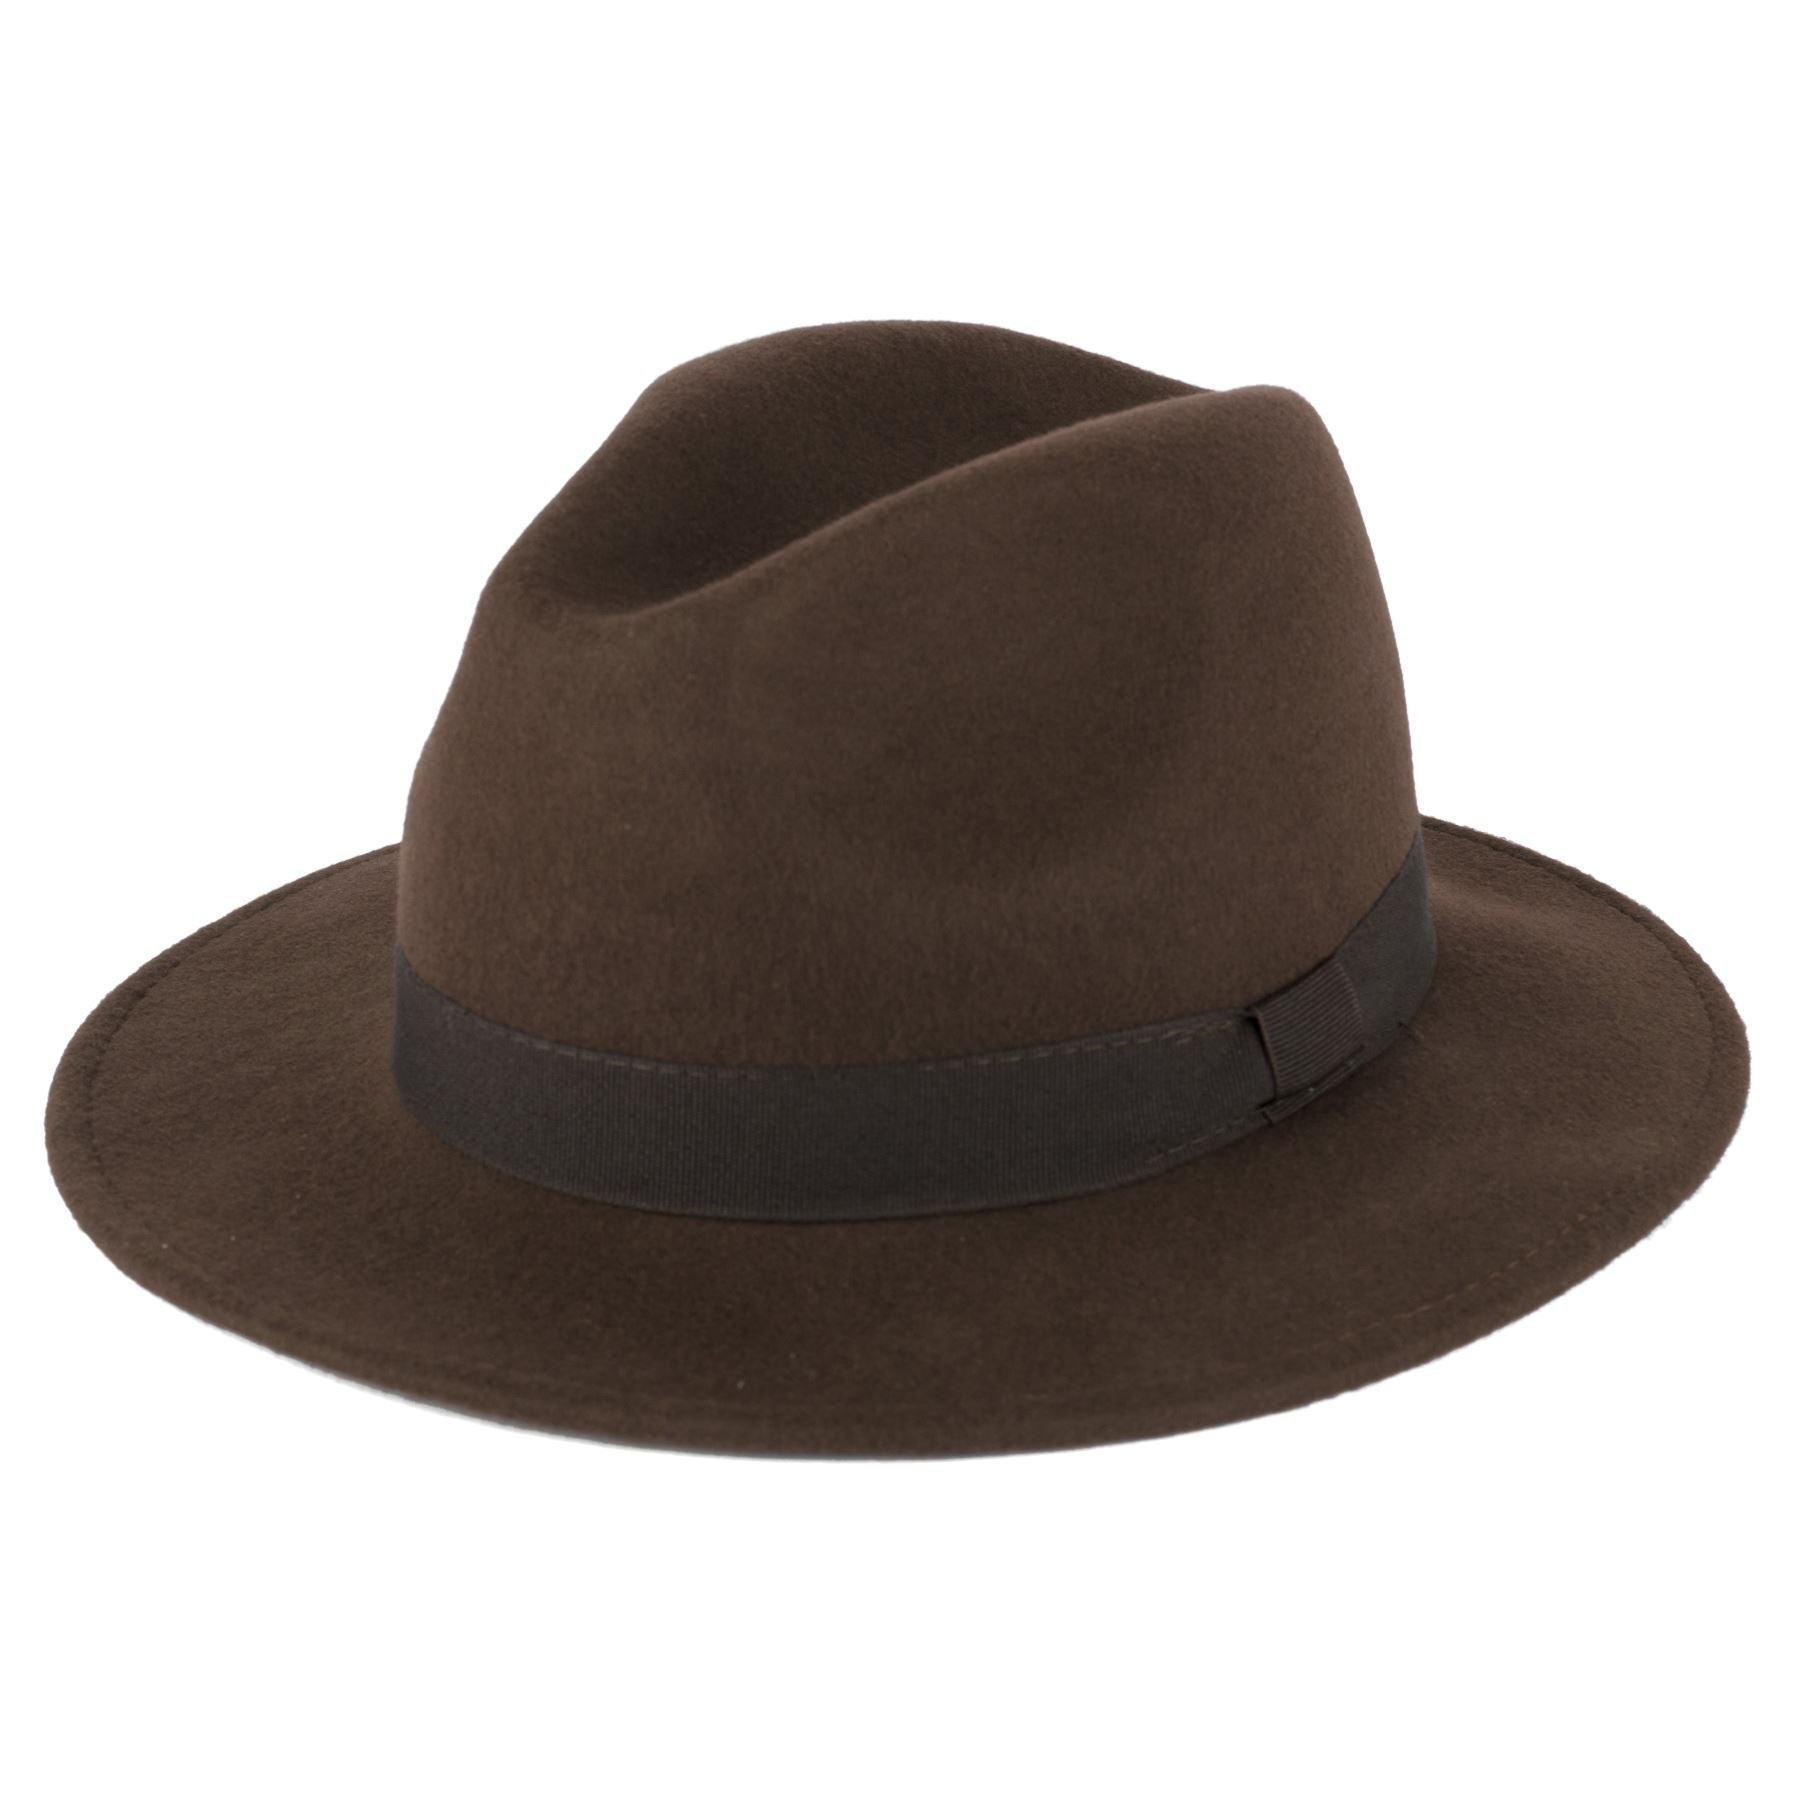 d2d Unisex 100% Wool Handmade Fedora Hat With Grosgrain Band - Chocolate Brown